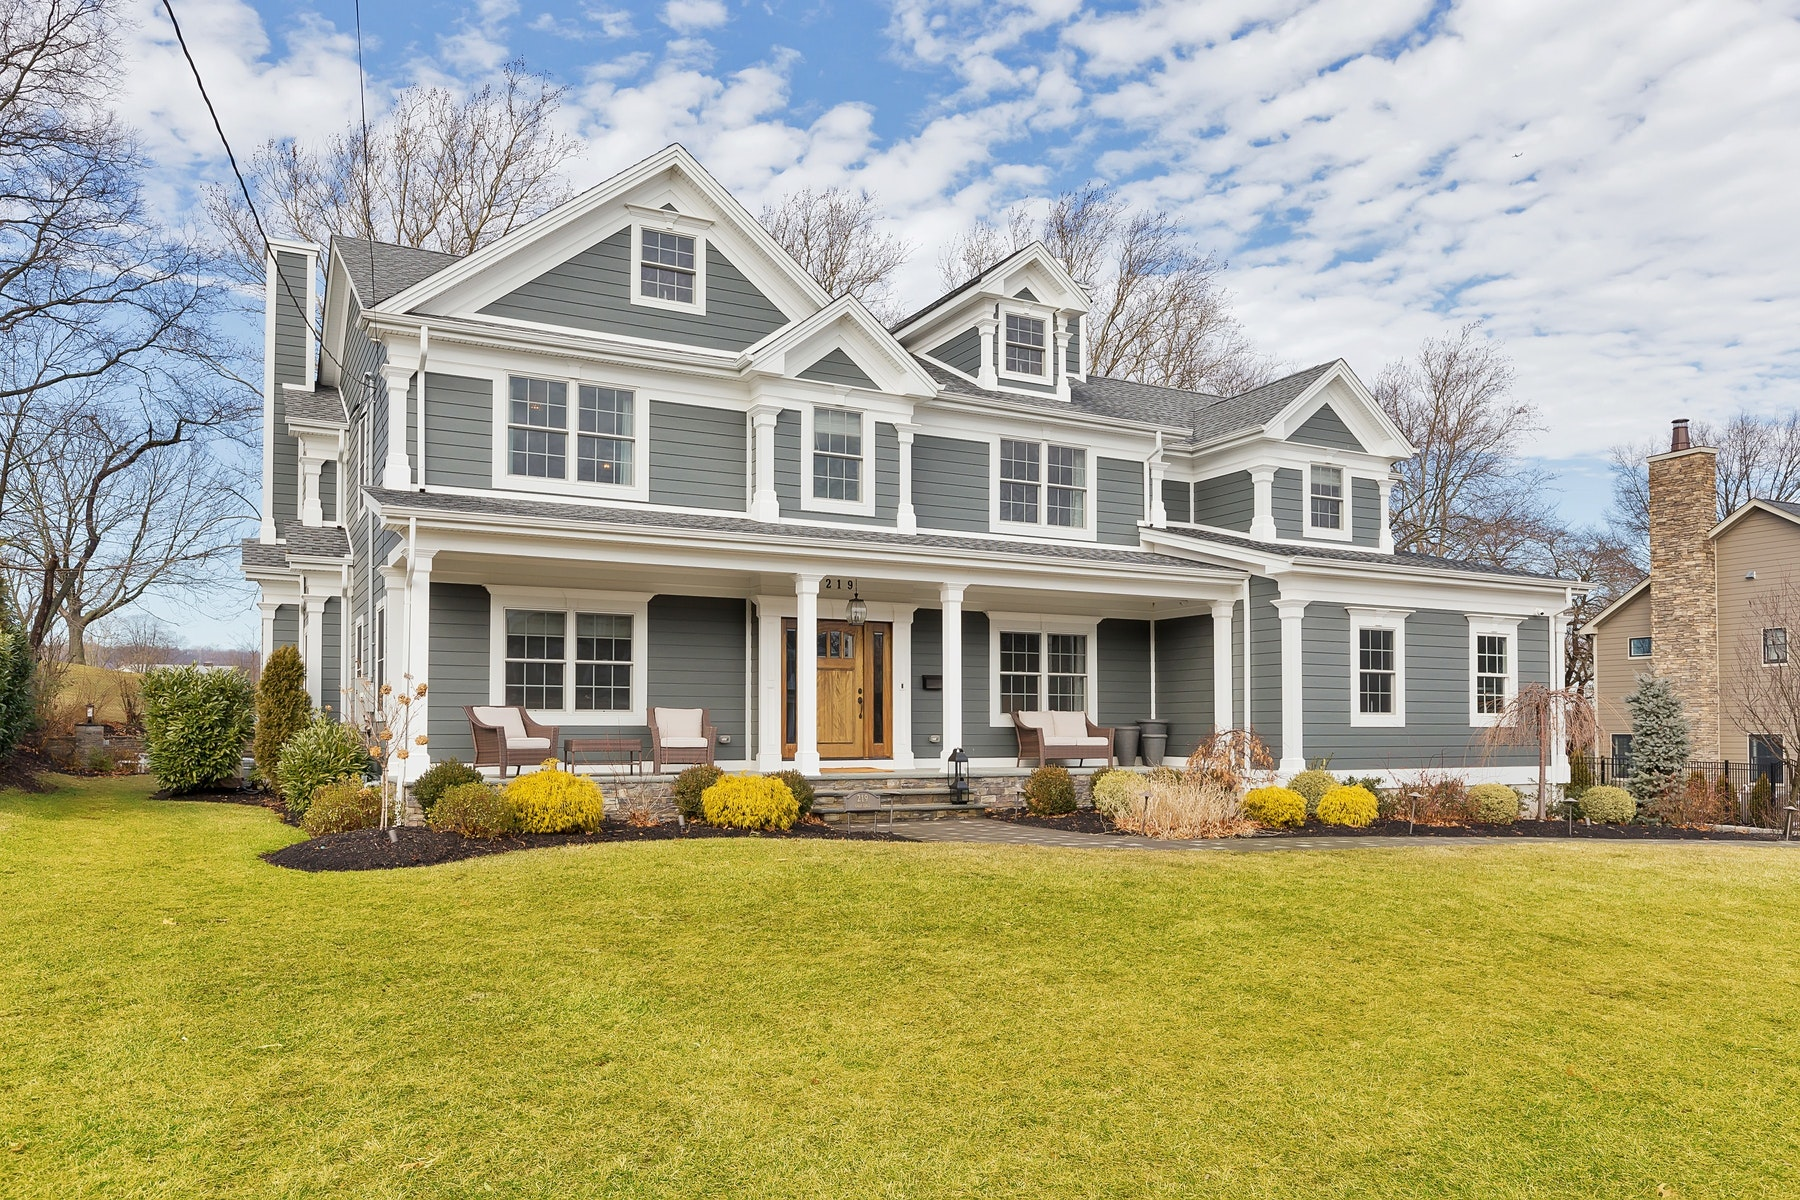 Single Family Home for Sale at Live Golf Edge 219 Golf Edge, Westfield, New Jersey 07090 United States